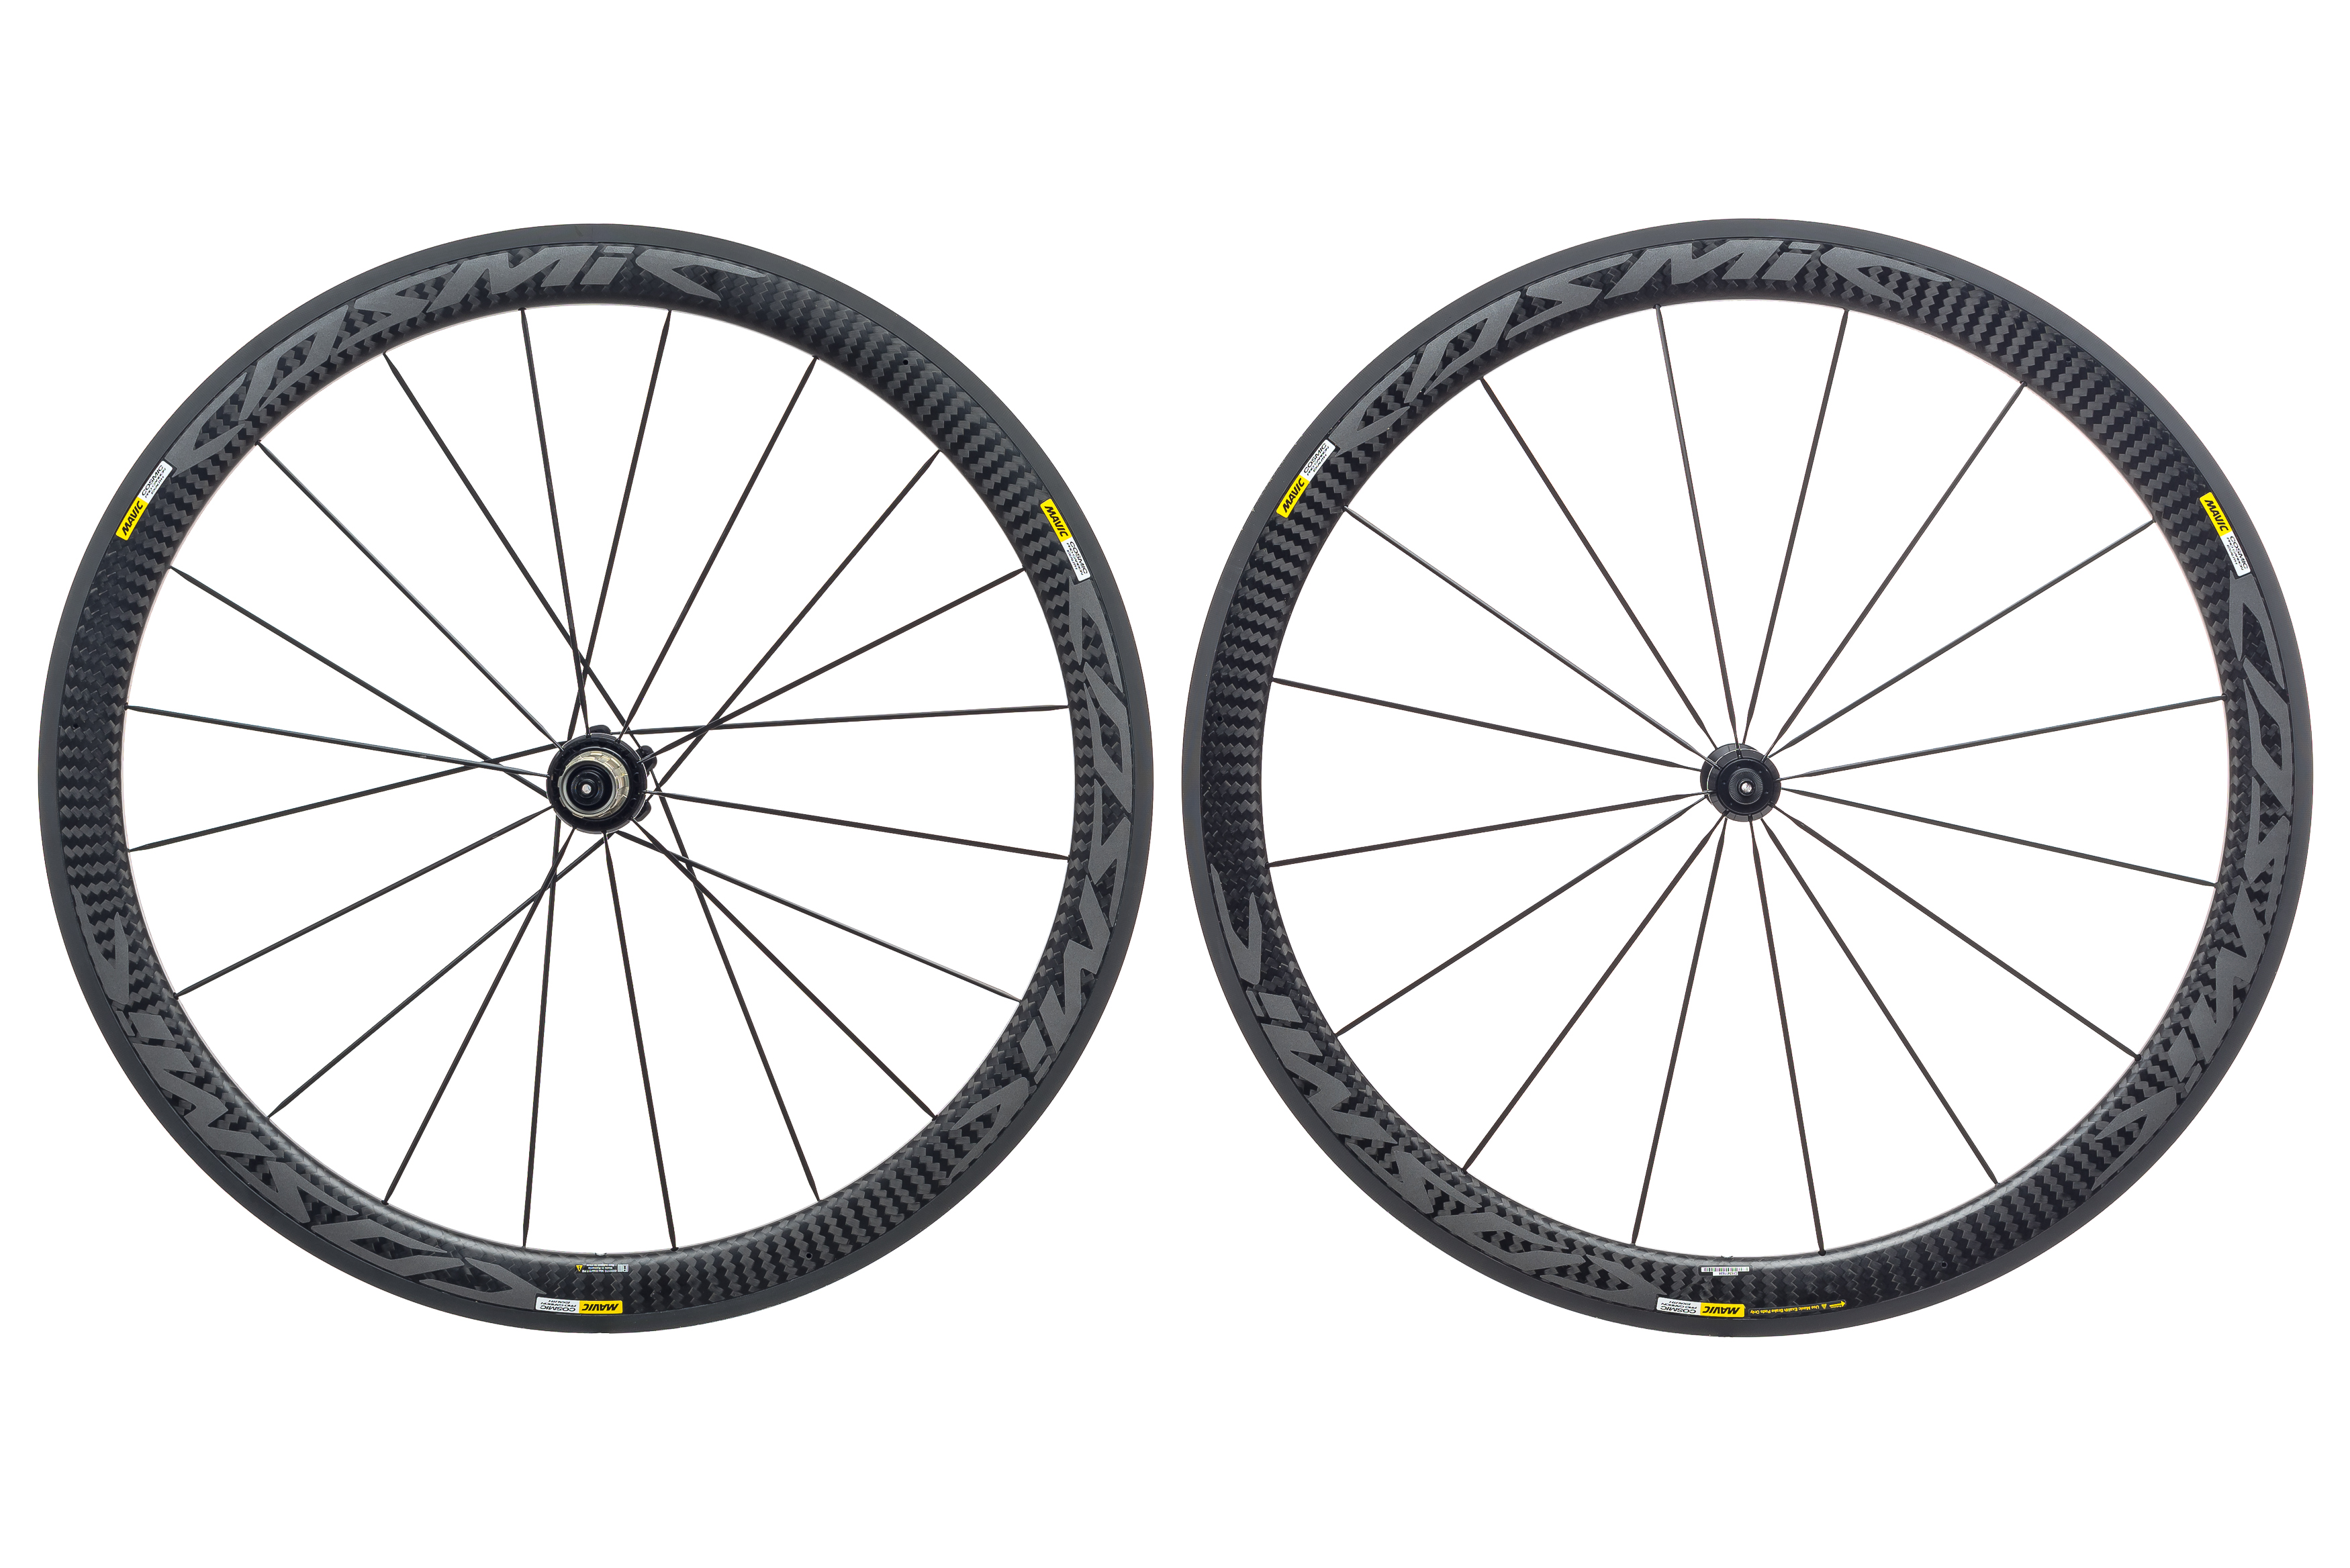 595d49901e8 Mavic Cosmic Pro Carbon Exalith Road Bike Wheel Set 700c Clincher Shimano  11s